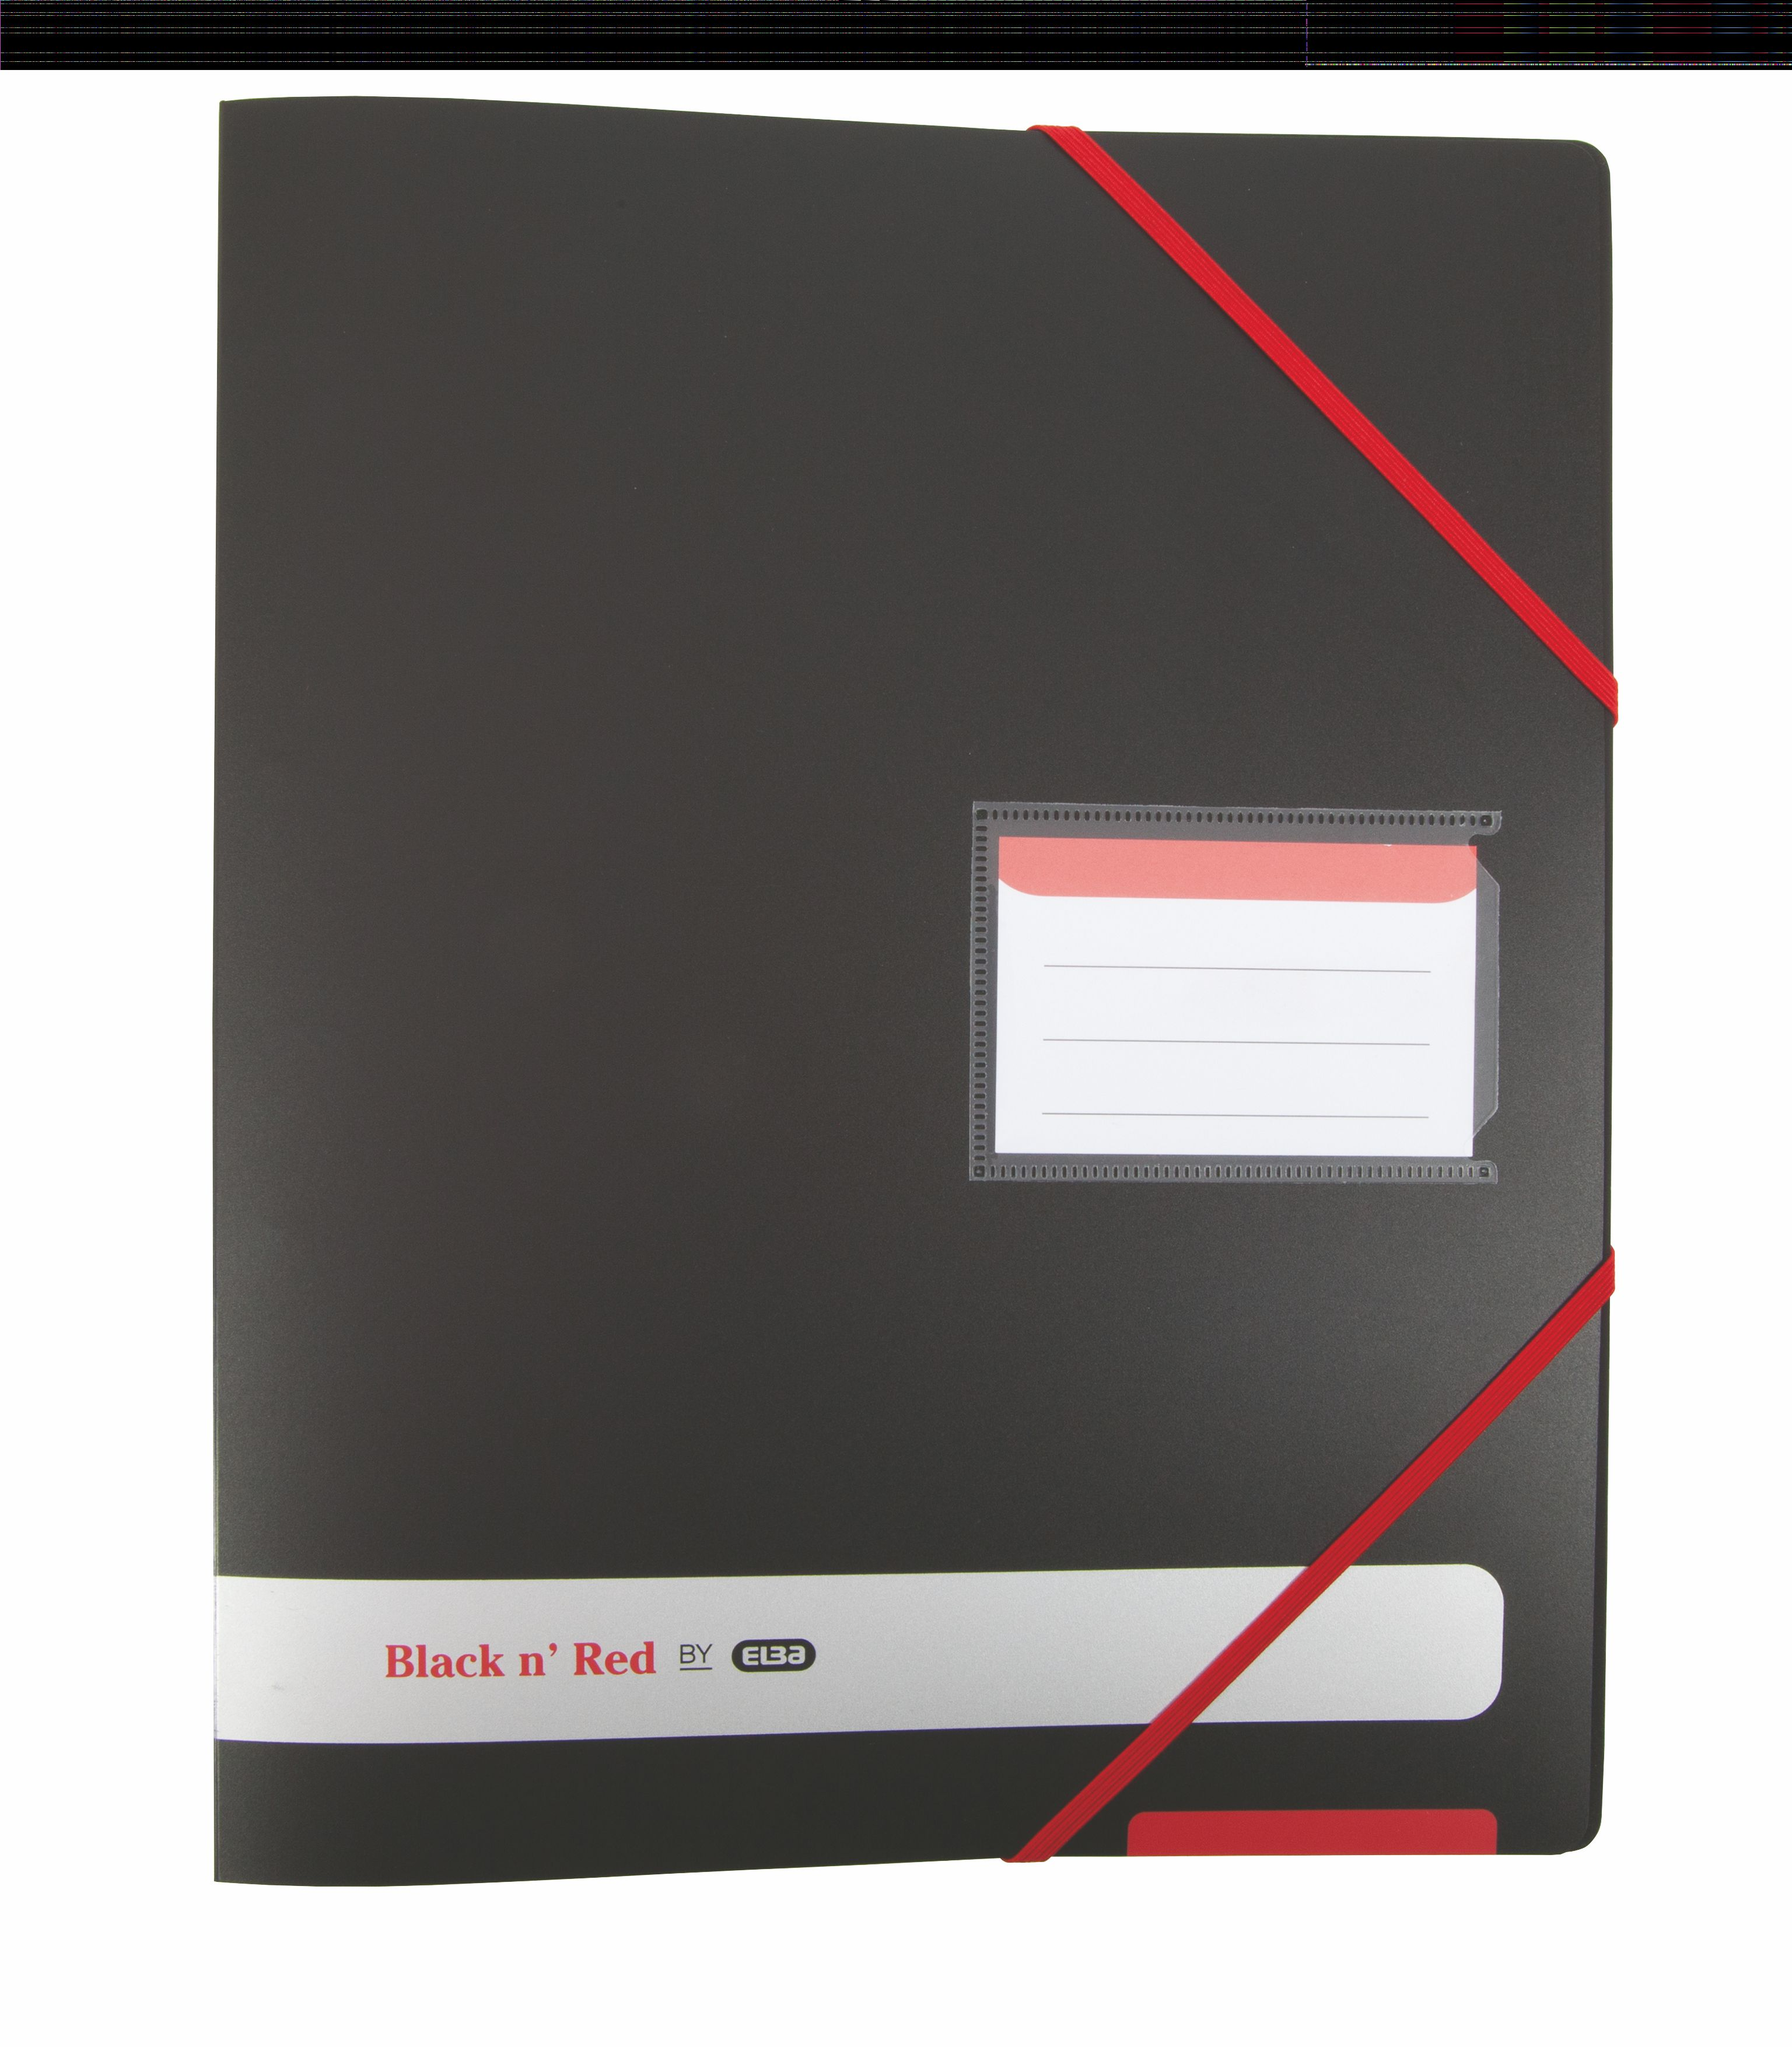 Black N Red Ring Binder Size 16mm Capacity 4 O Rings A4 Ref 400078863